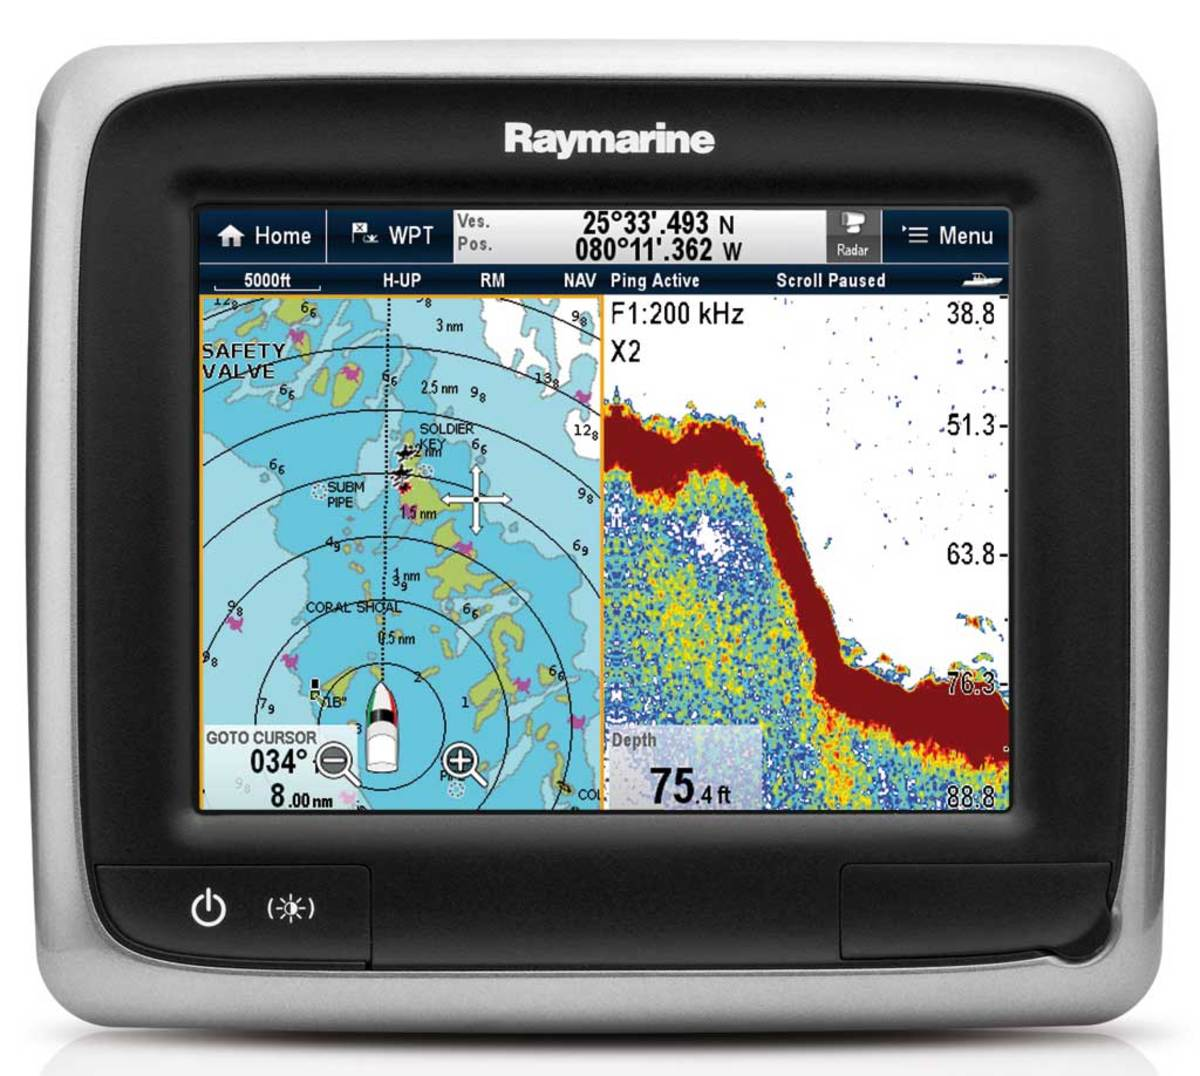 Raymarine a67 Multifunction Display - Click to enlarge